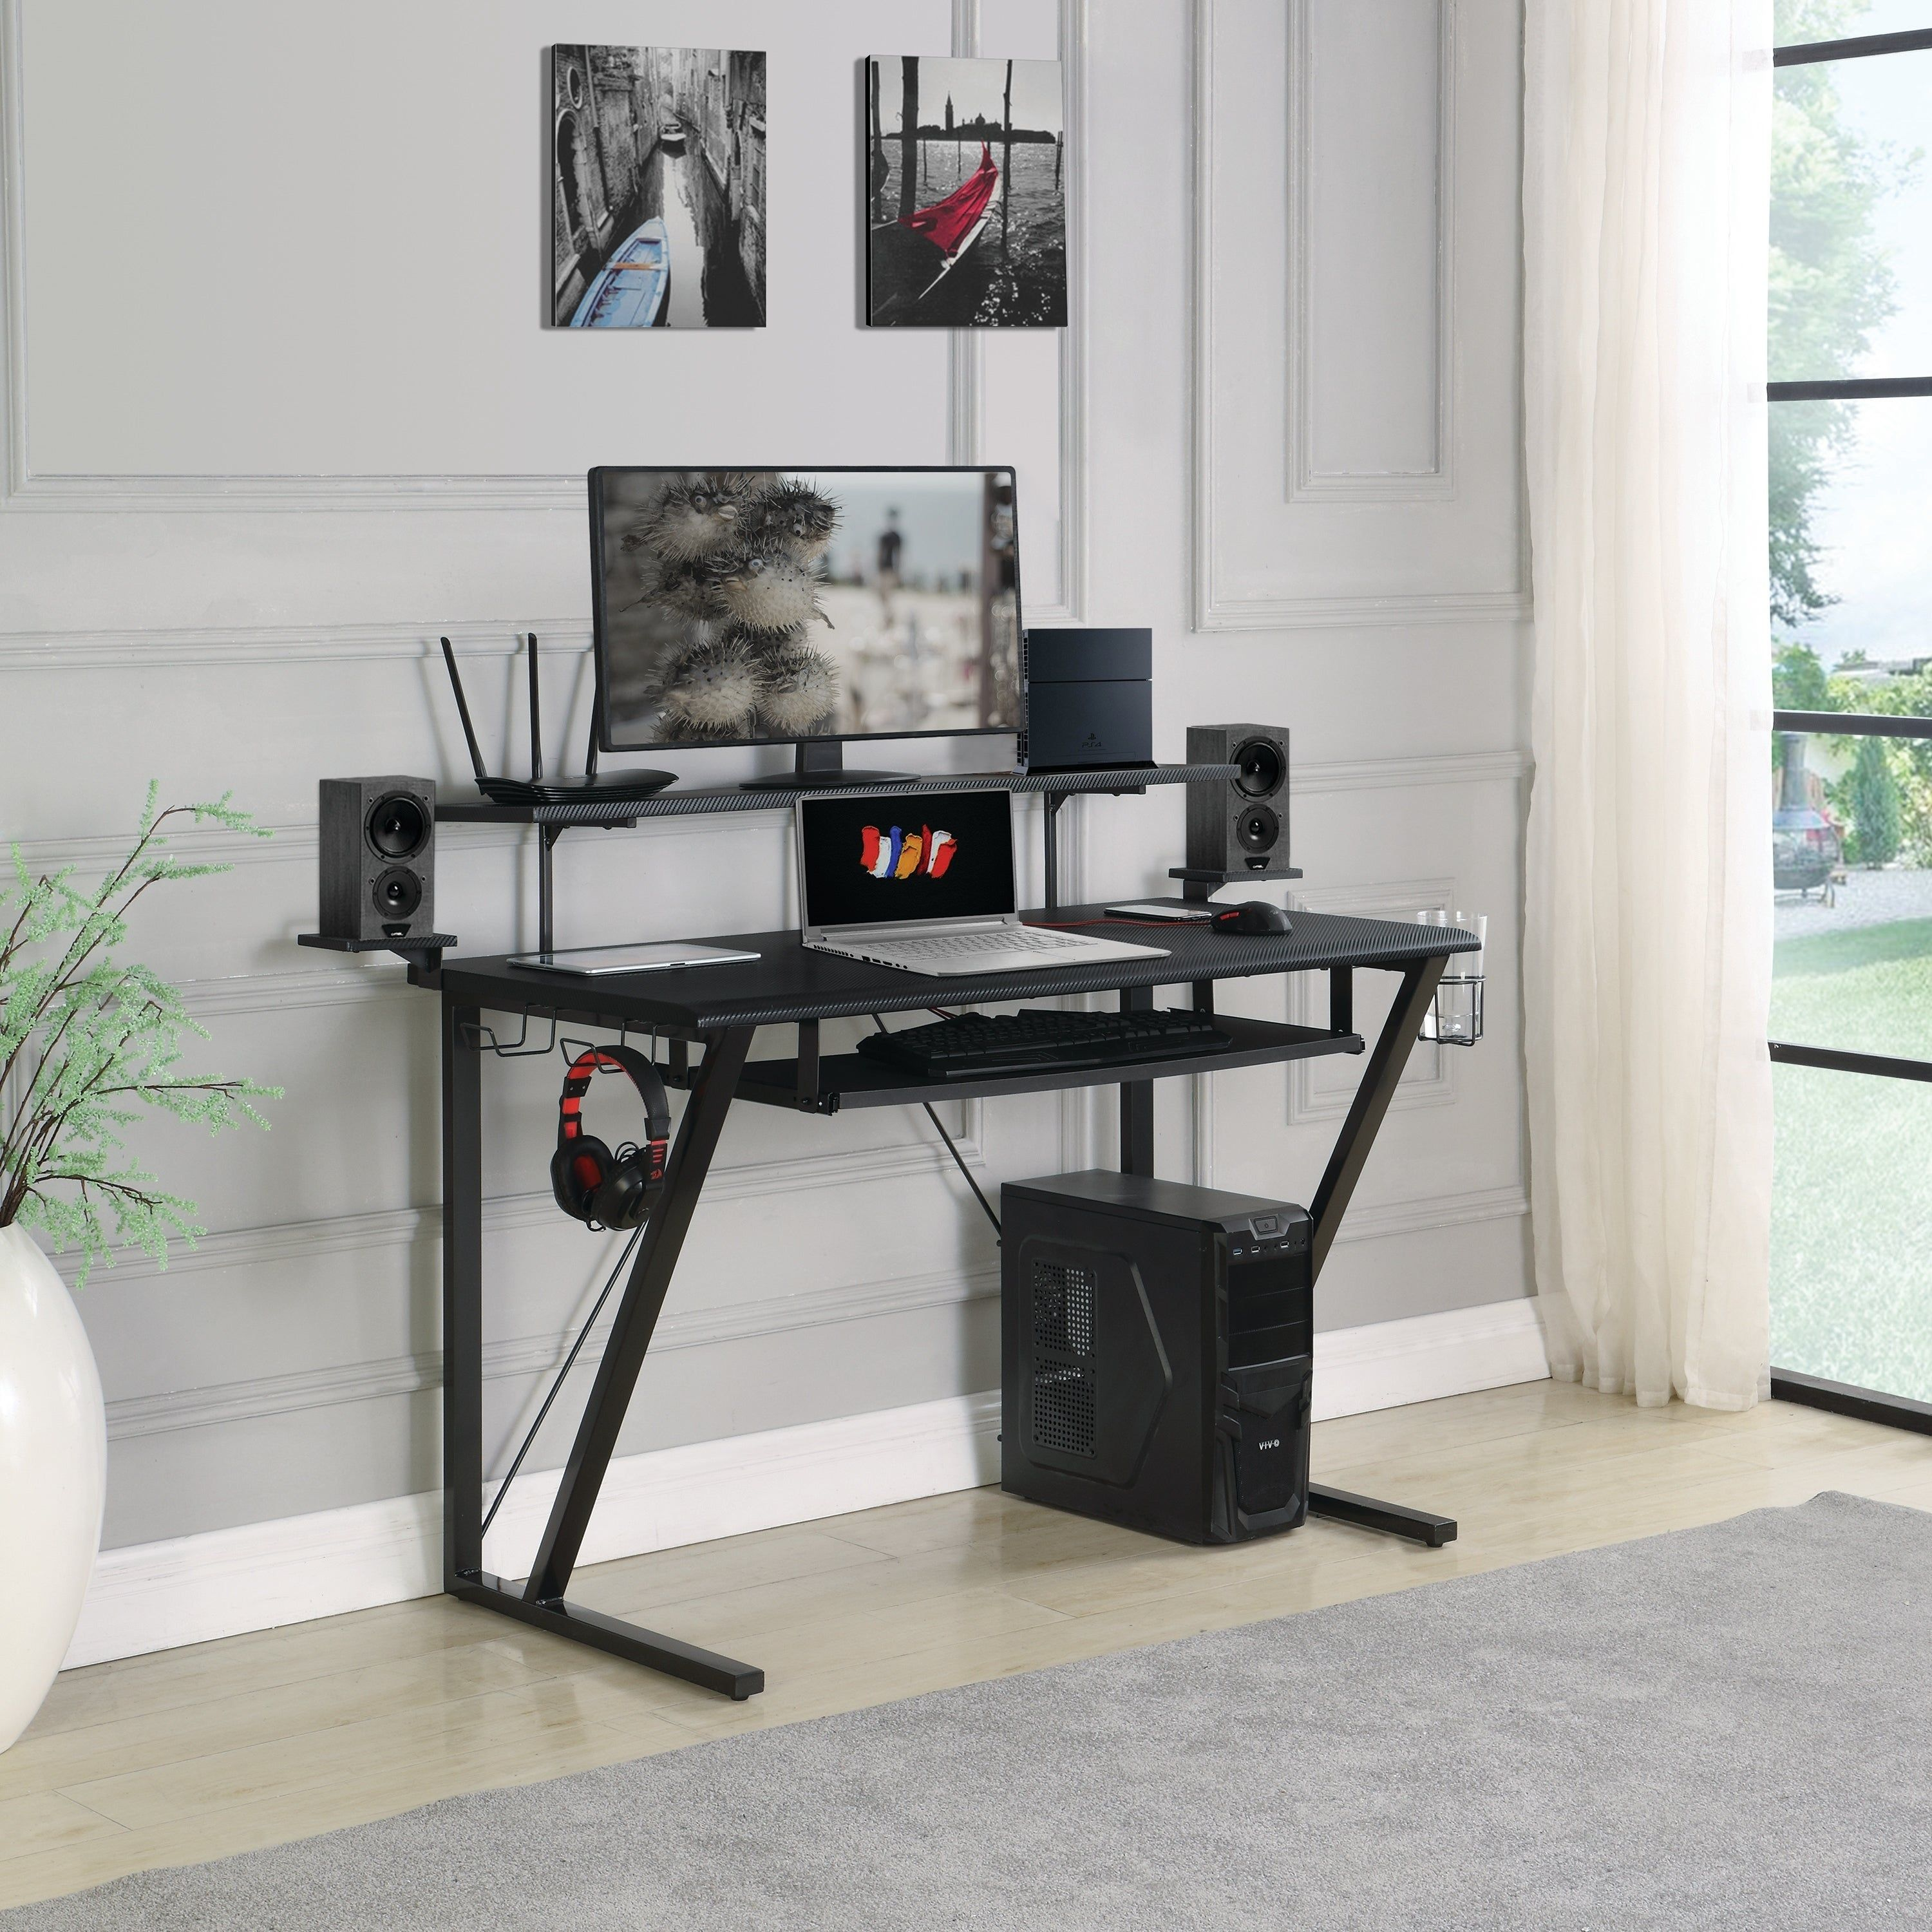 Online Shopping - Bedding, Furniture, Electronics, Jewelry, Clothing & more #gamingdesk